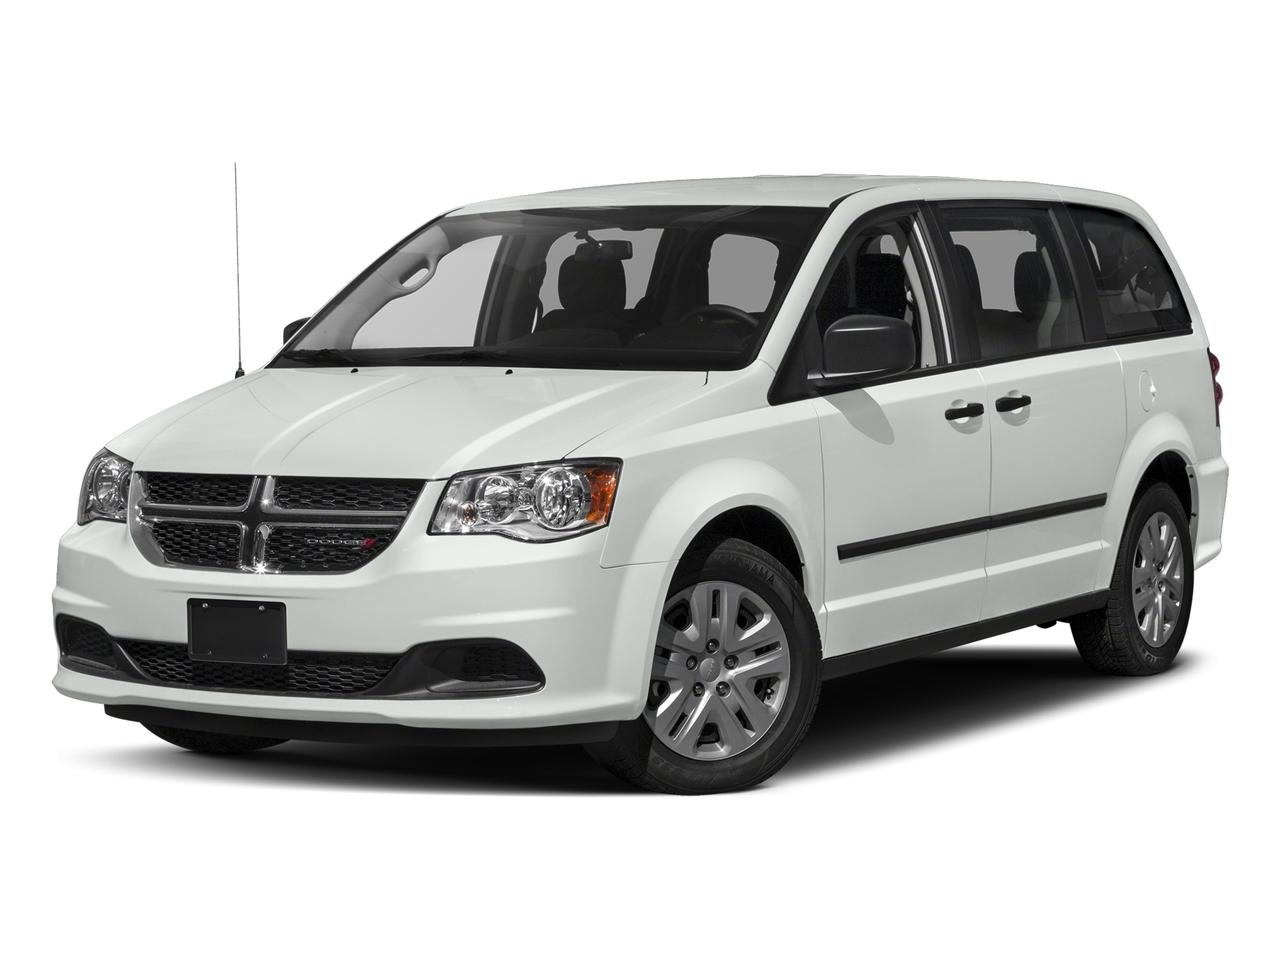 2017 Dodge Grand Caravan Vehicle Photo in Watertown, CT 06795